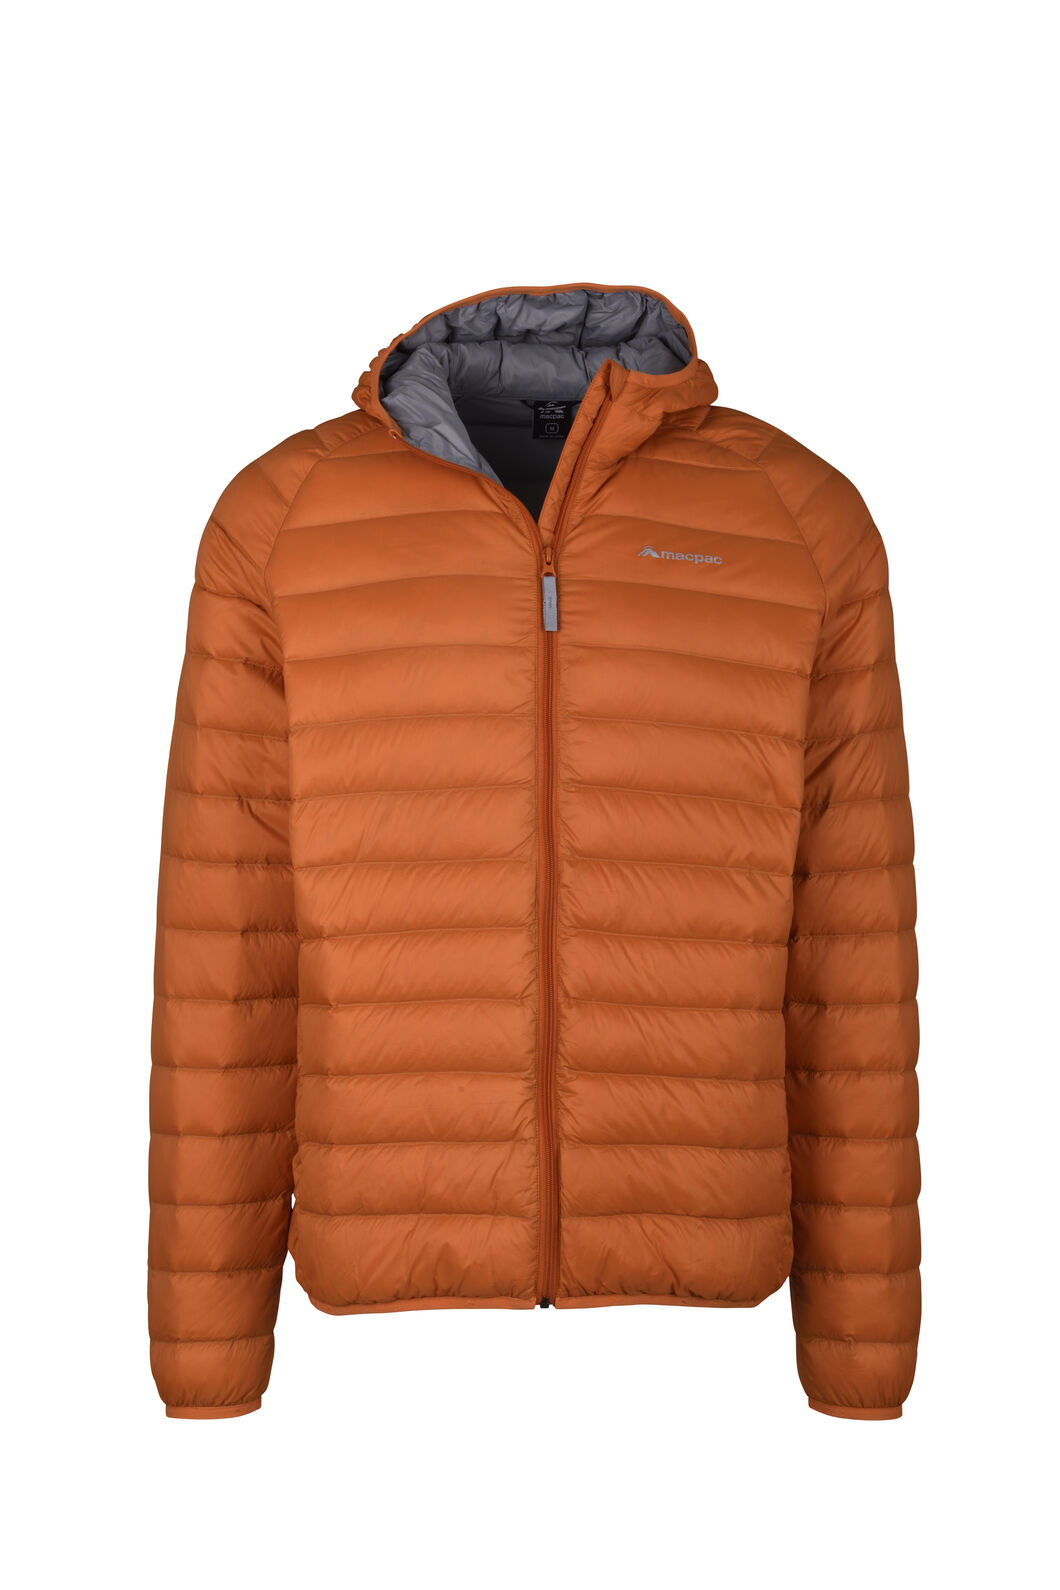 Macpac Uber Hooded Down Jacket - Men's, Burnt Orange, hi-res